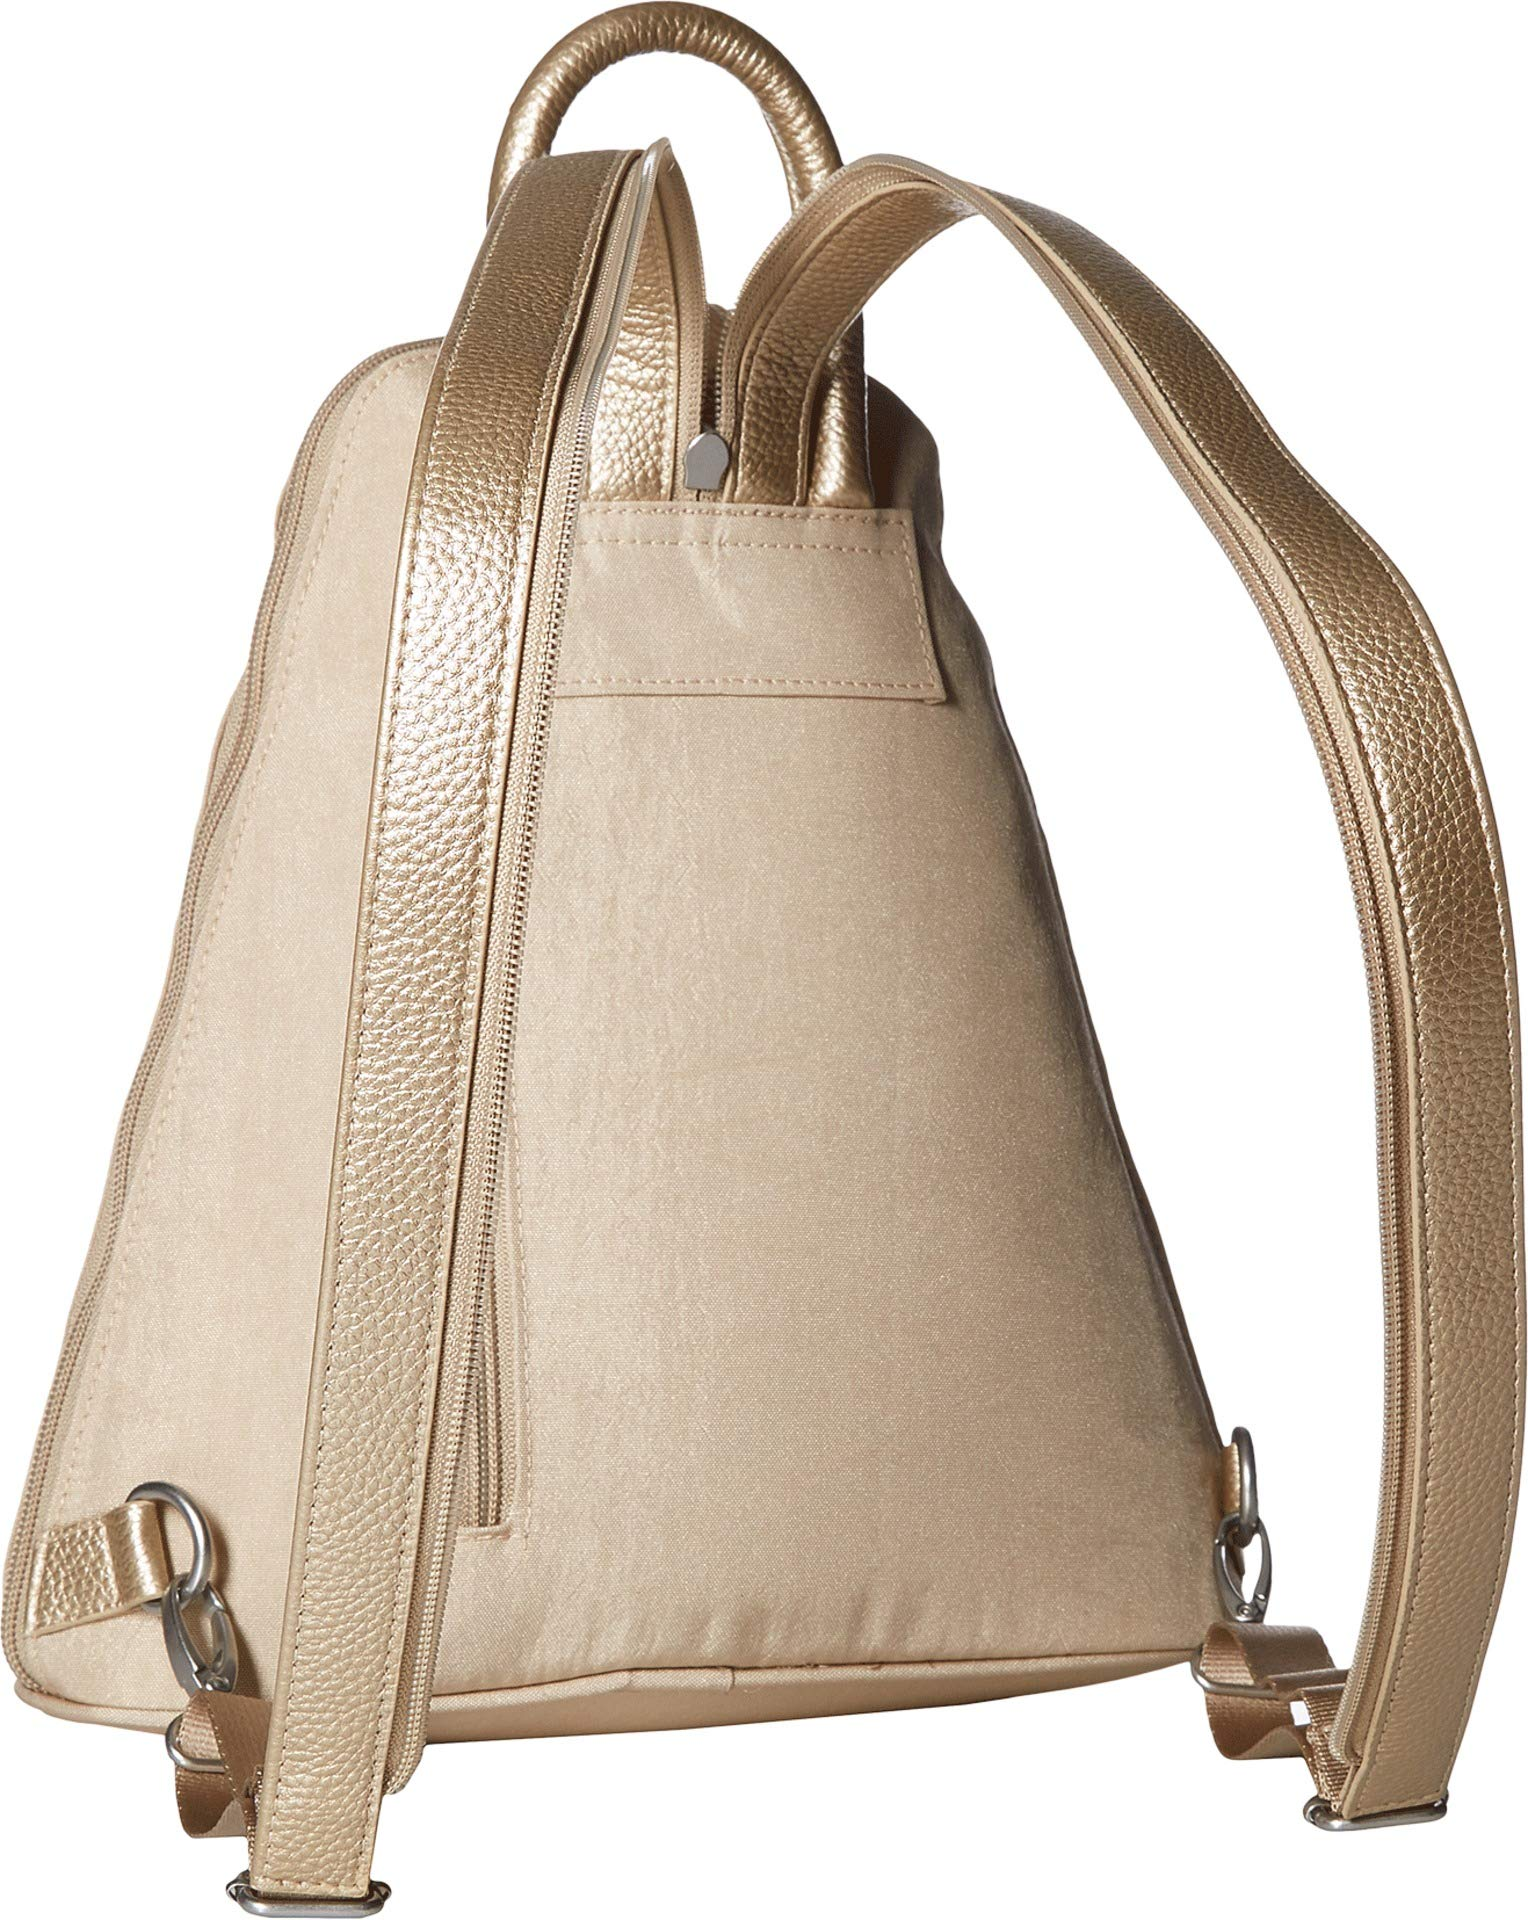 Baggallini Women's Metro Backpack with RFID Phone Wristlet Champagne Shimmer One Size by Baggallini (Image #2)